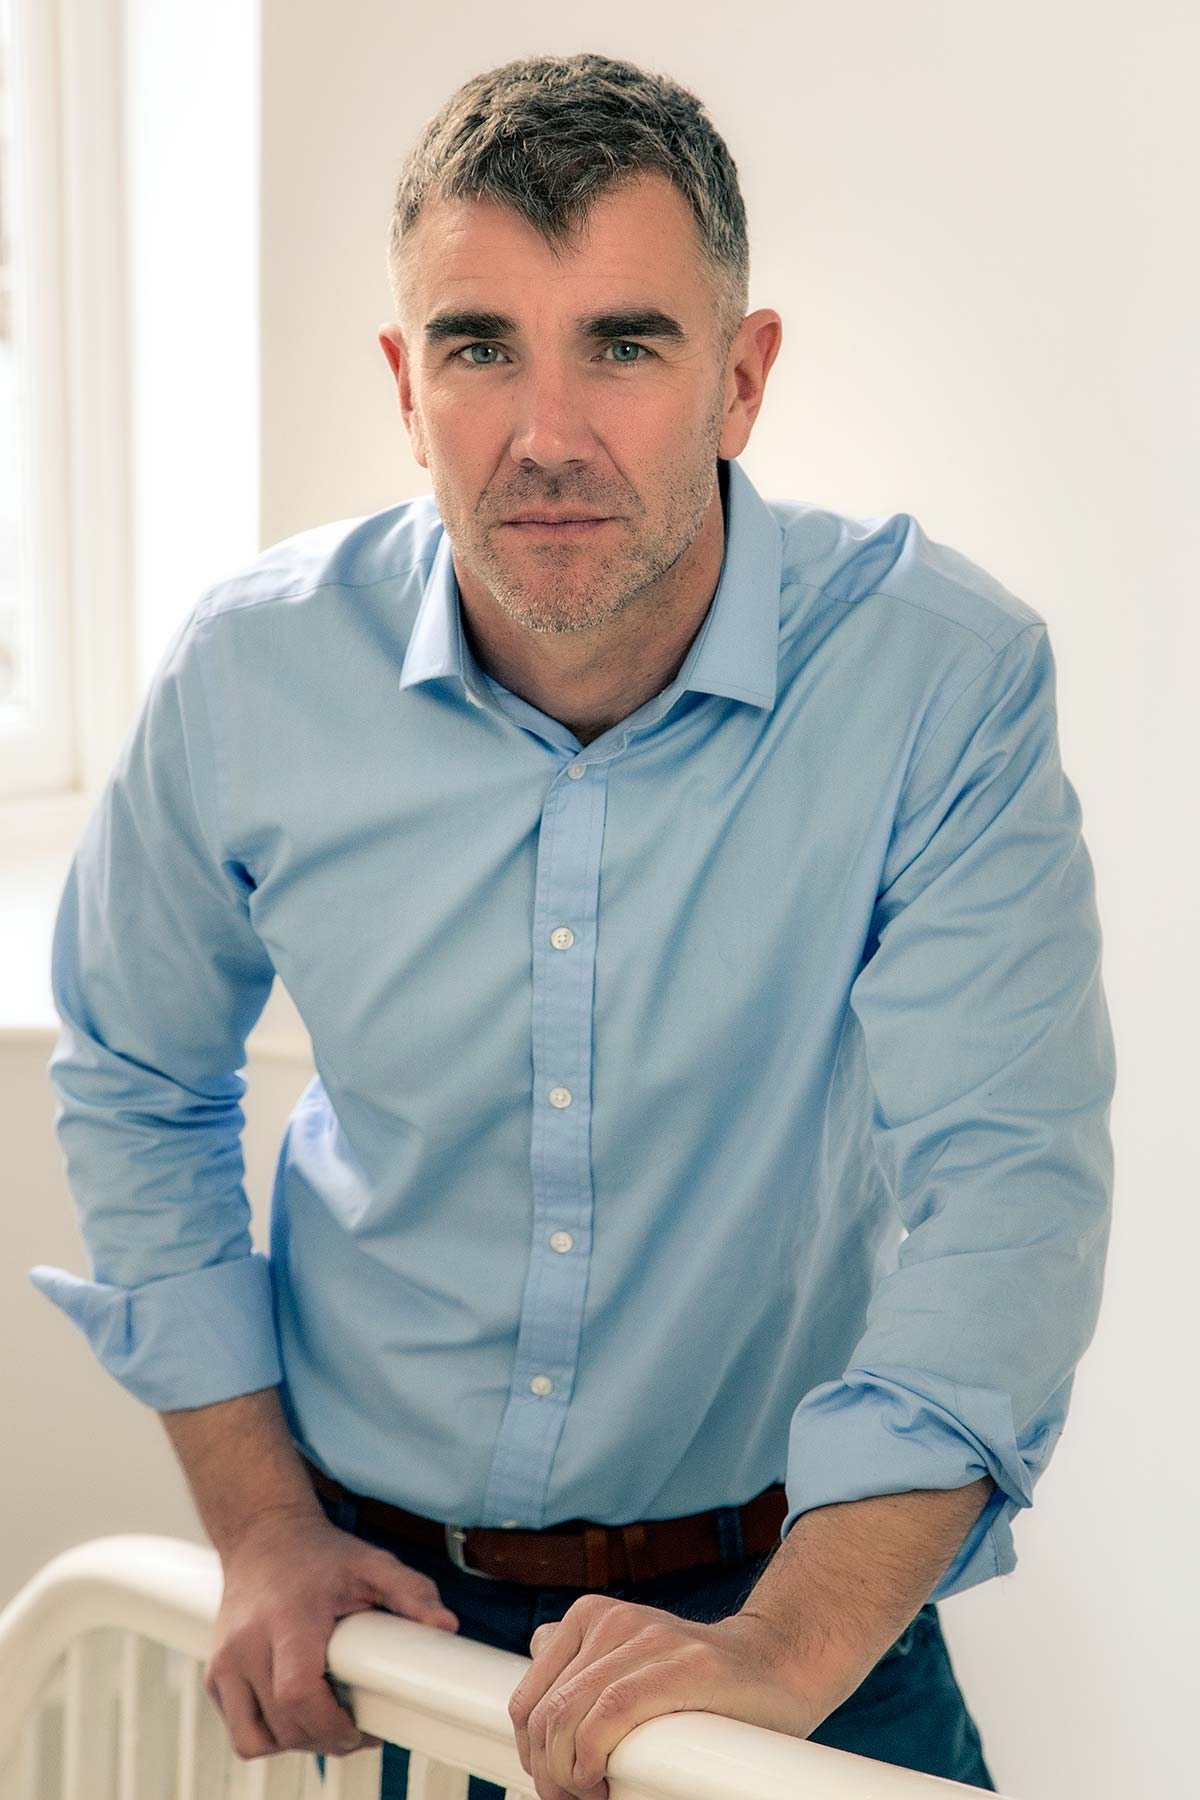 Ivan Massow for London Mayor